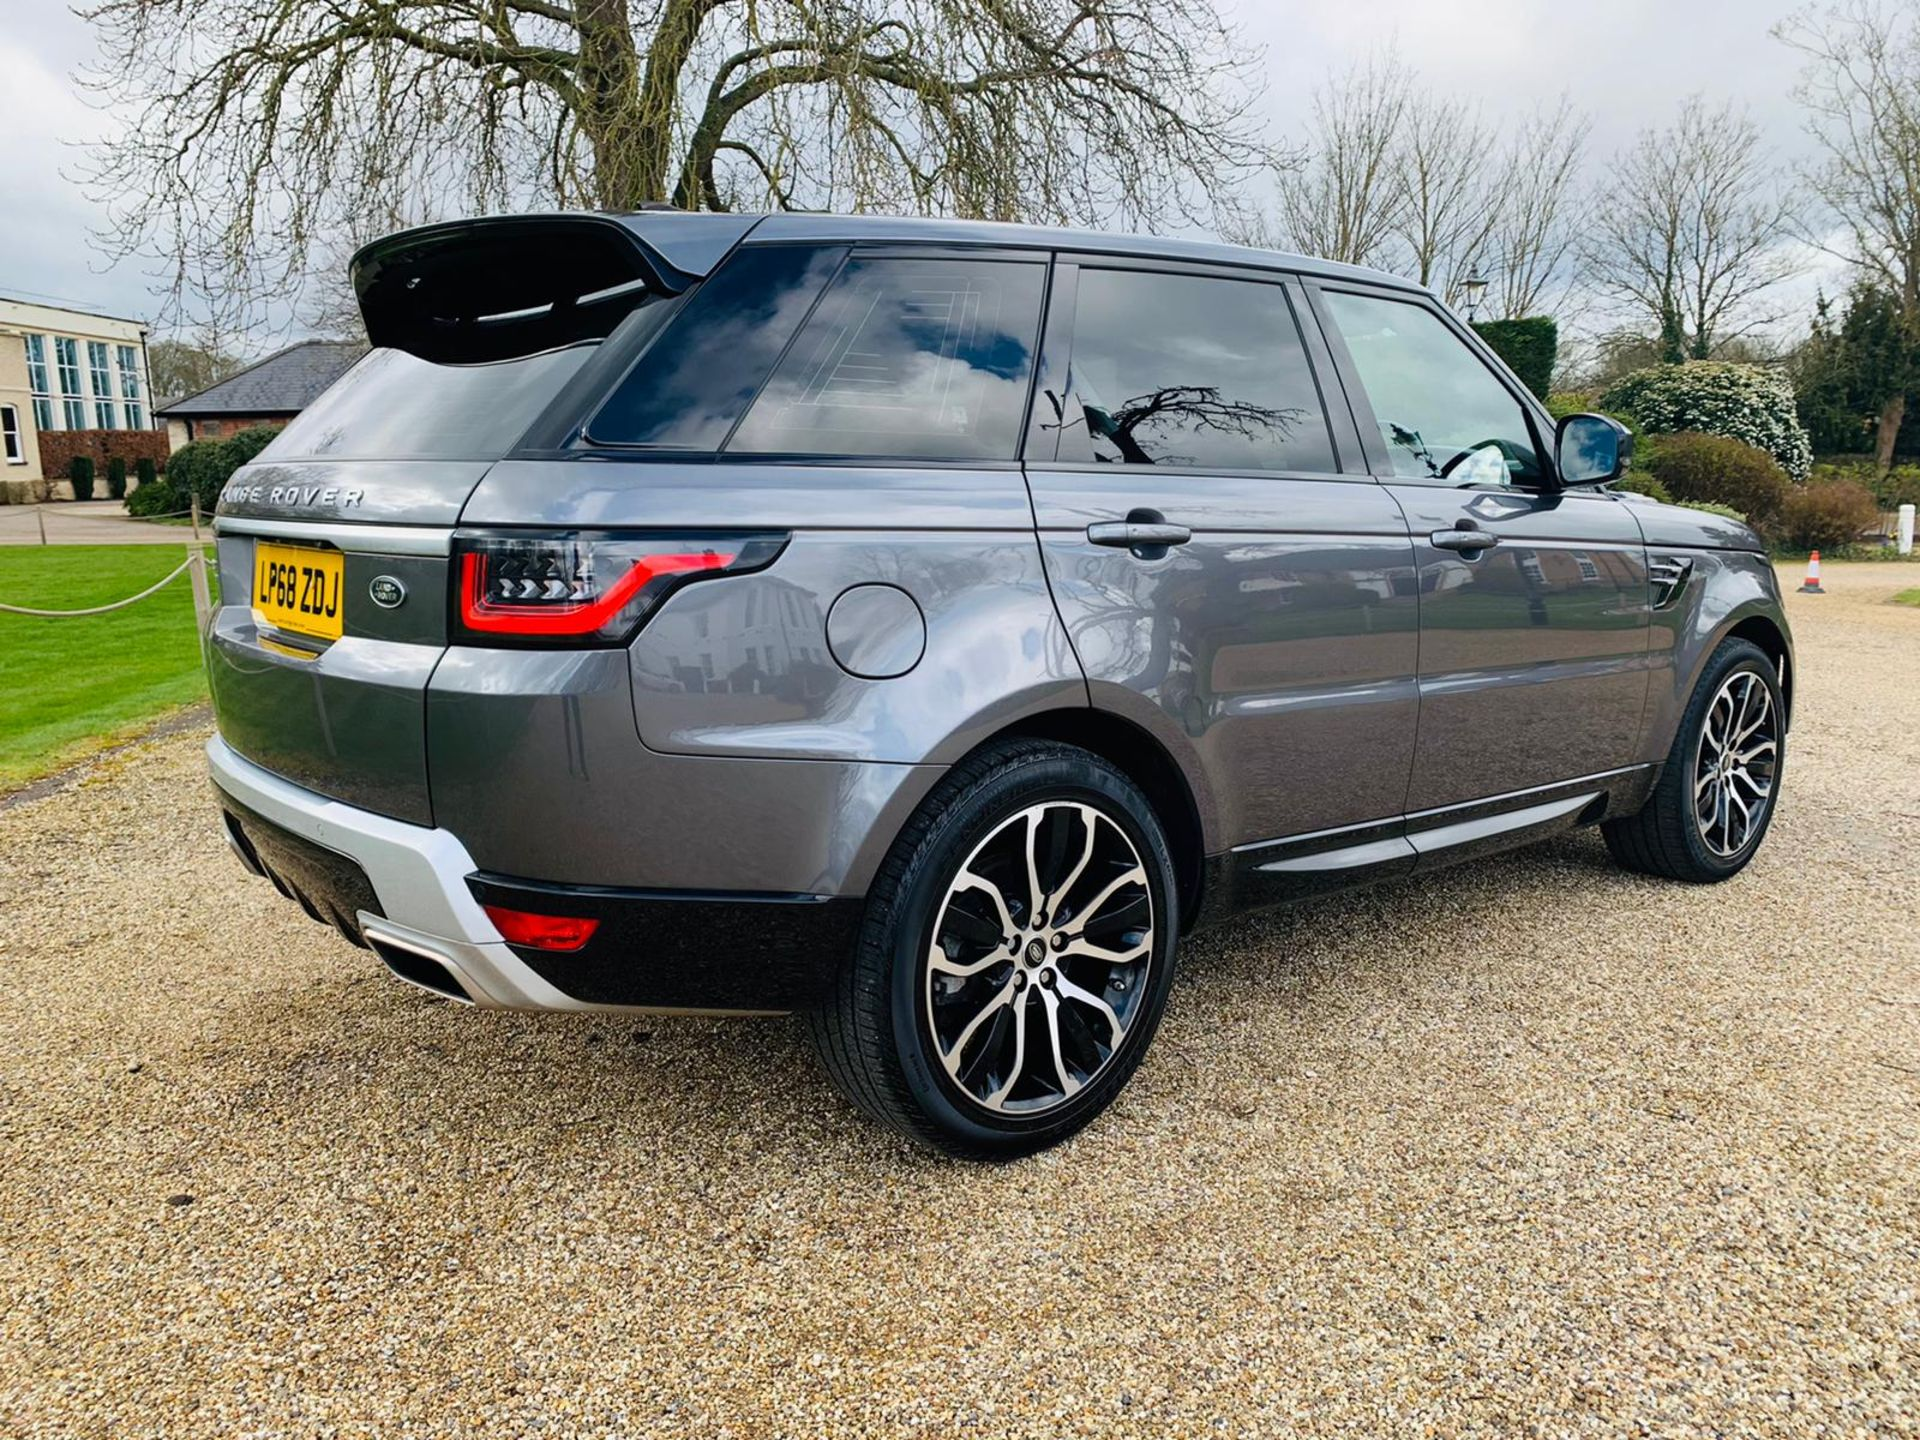 (RESERVE MET) Range Rover Sport 3.0 SDV6 HSE Auto - 2019 - 1 Keeper From New - Virtual Cockpit - - Image 3 of 42